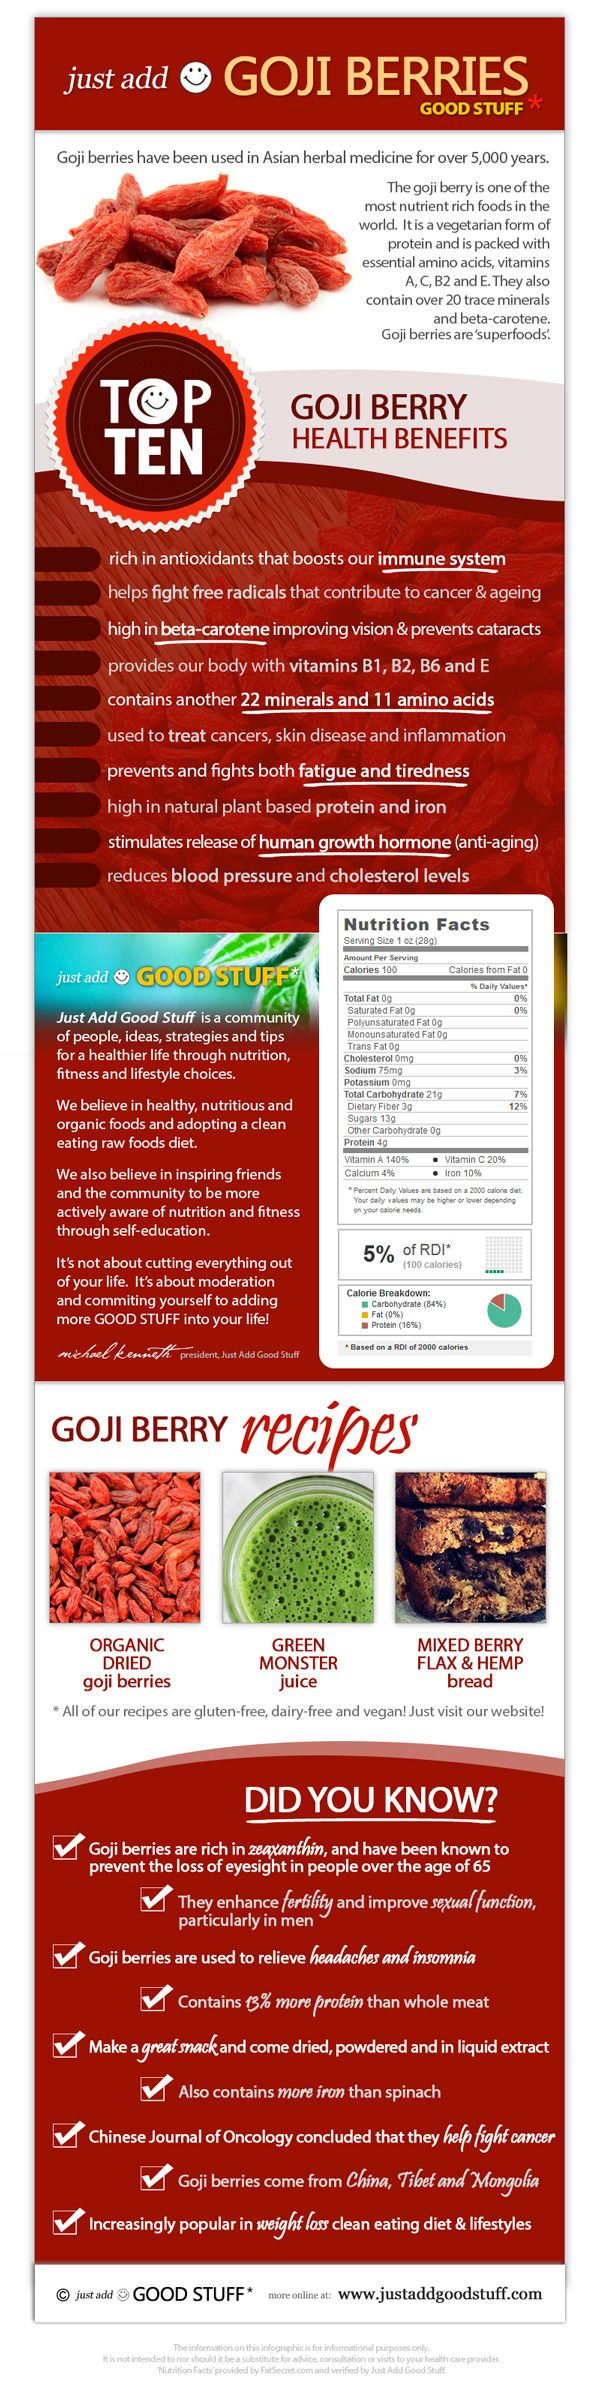 #Goji berry #infographic outlining the top 10 #health benefits of goji berries, interesting facts and nutritional value > More online at http://www.justaddgoodstuff.com/goji-berry-infographic/